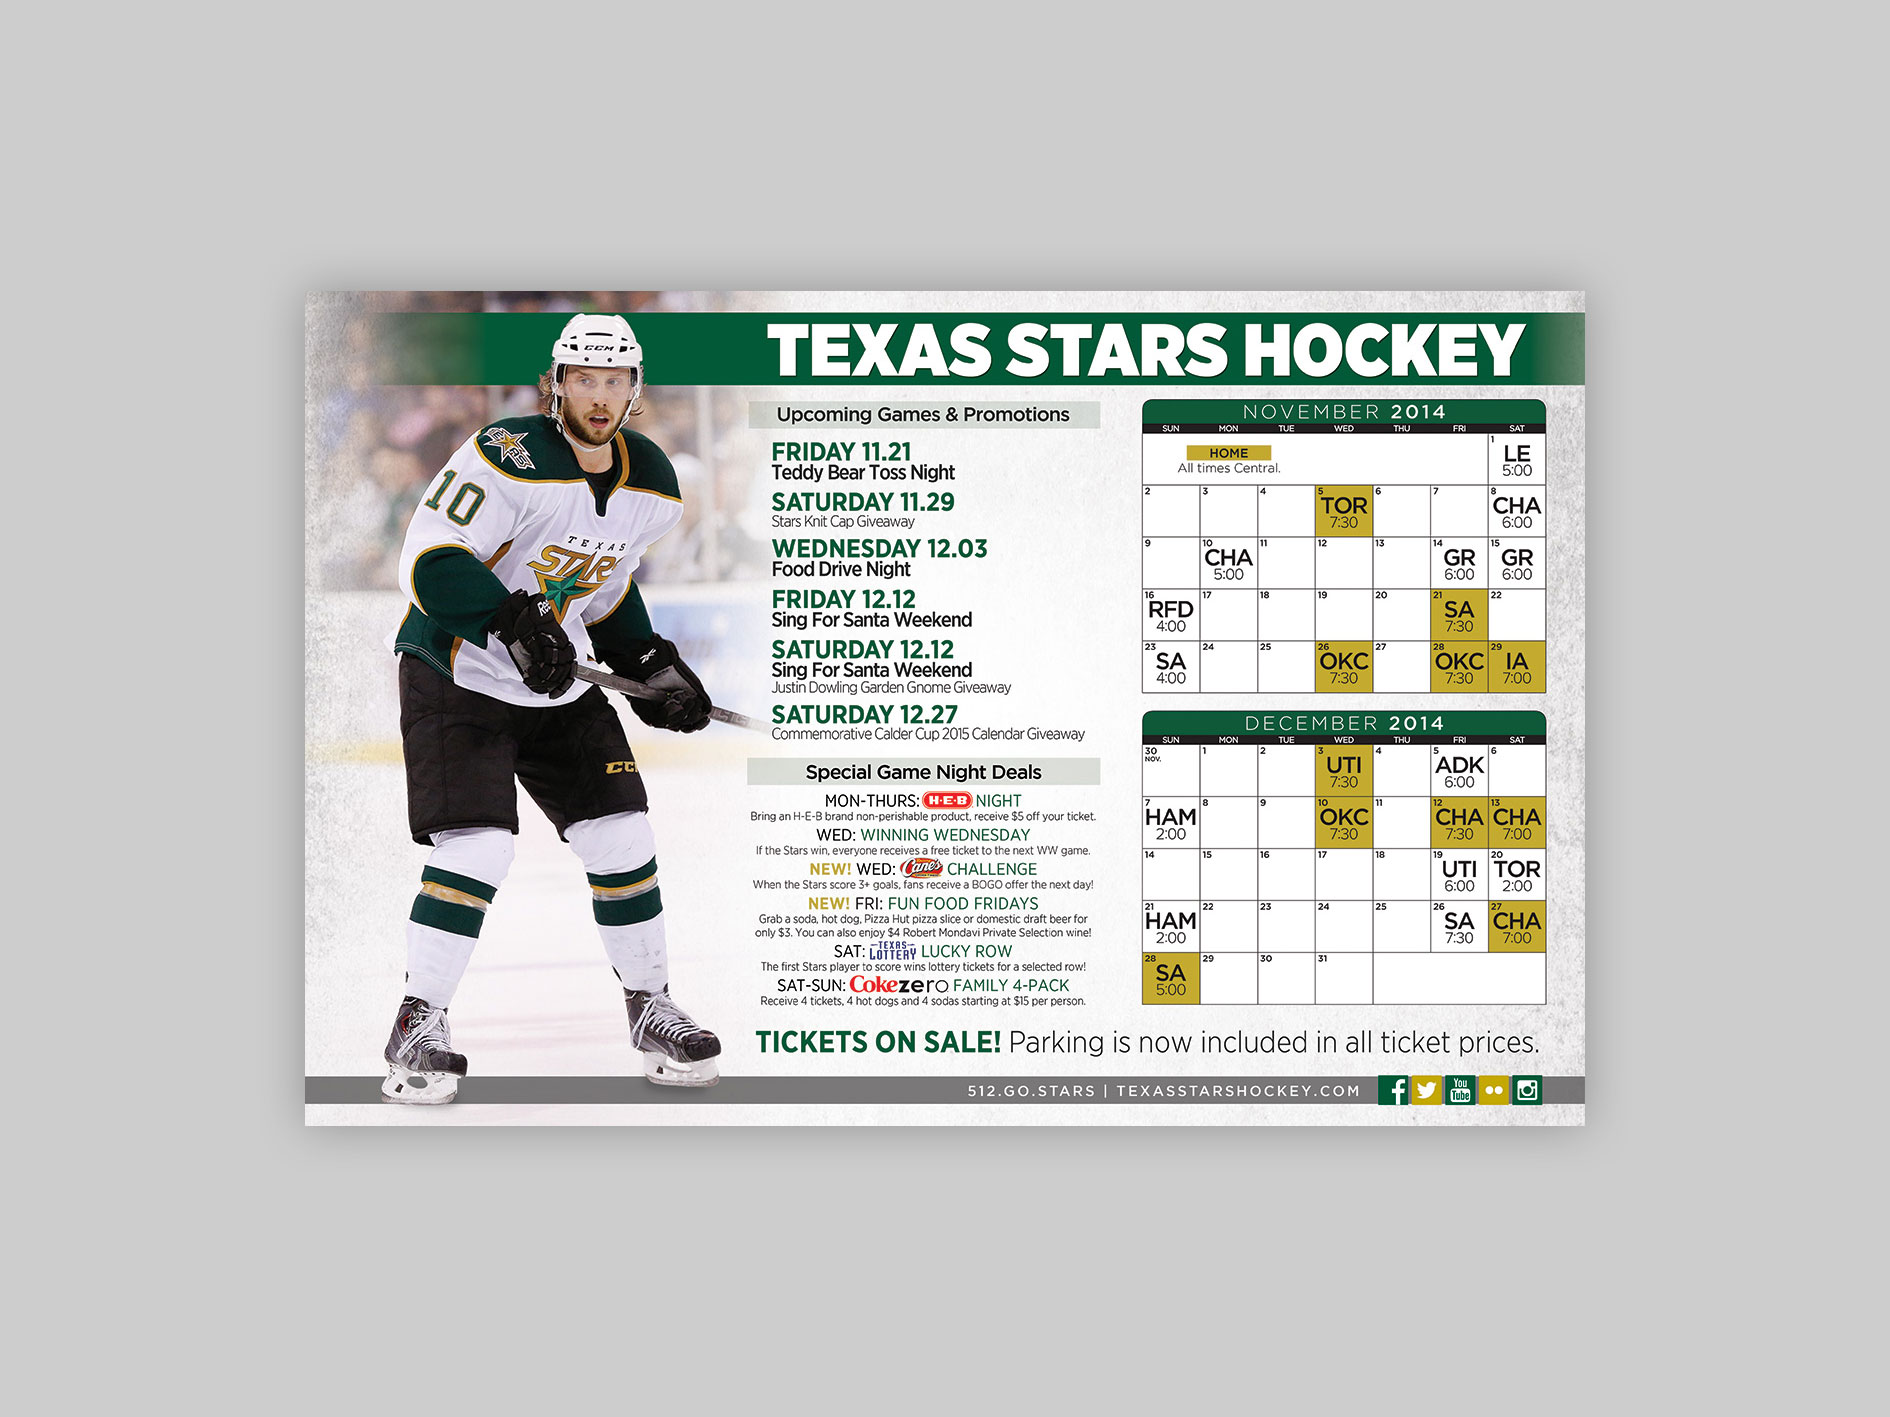 All Over Media poster, distributed to display upcoming games and promotions.